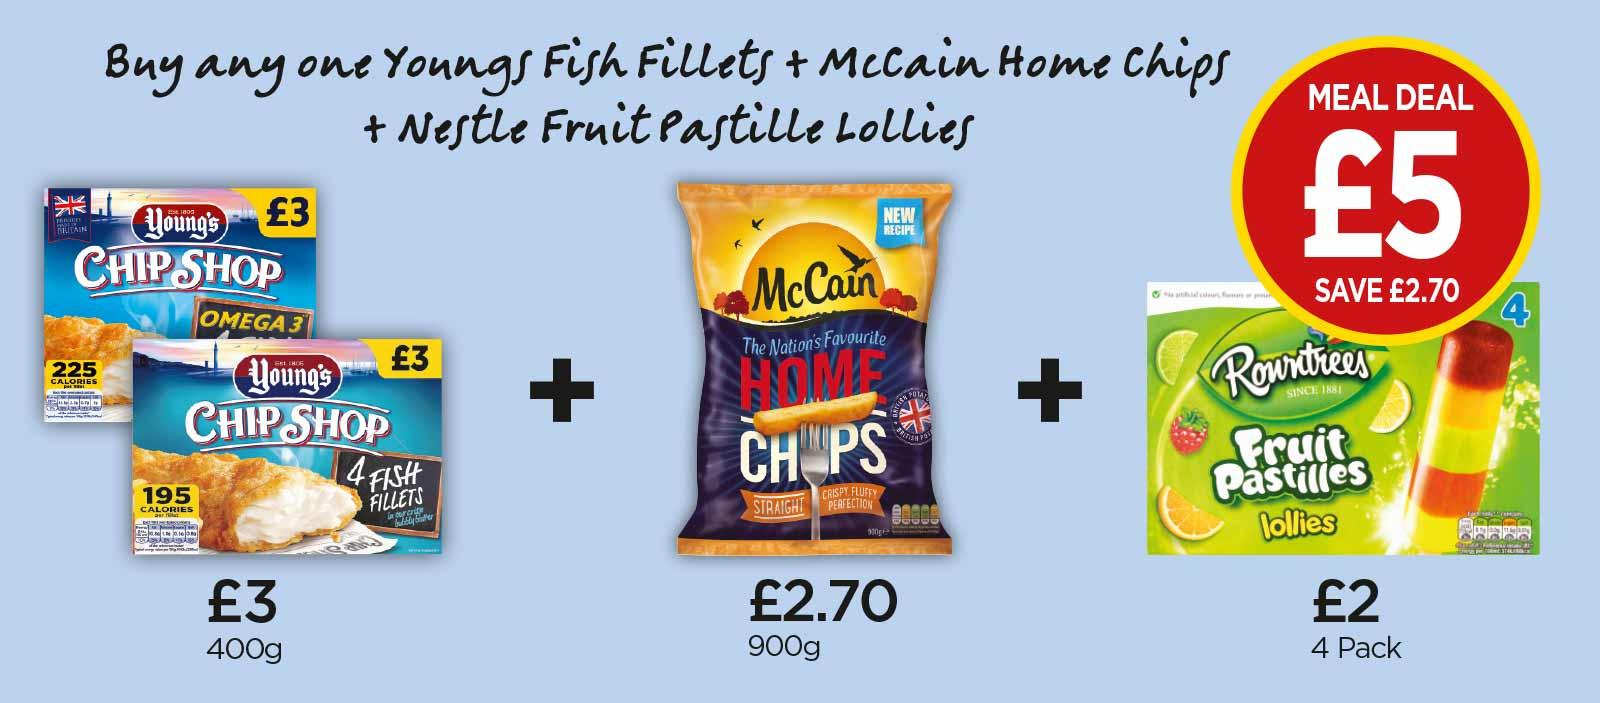 FROZEN MEAL DEAL: Youngs Fish Fillets, Youngs Breaded Omega 3 Fish Fillets, McCain Home Chips, Nestle Fruit Pastille Lolly - £5 at Budgens